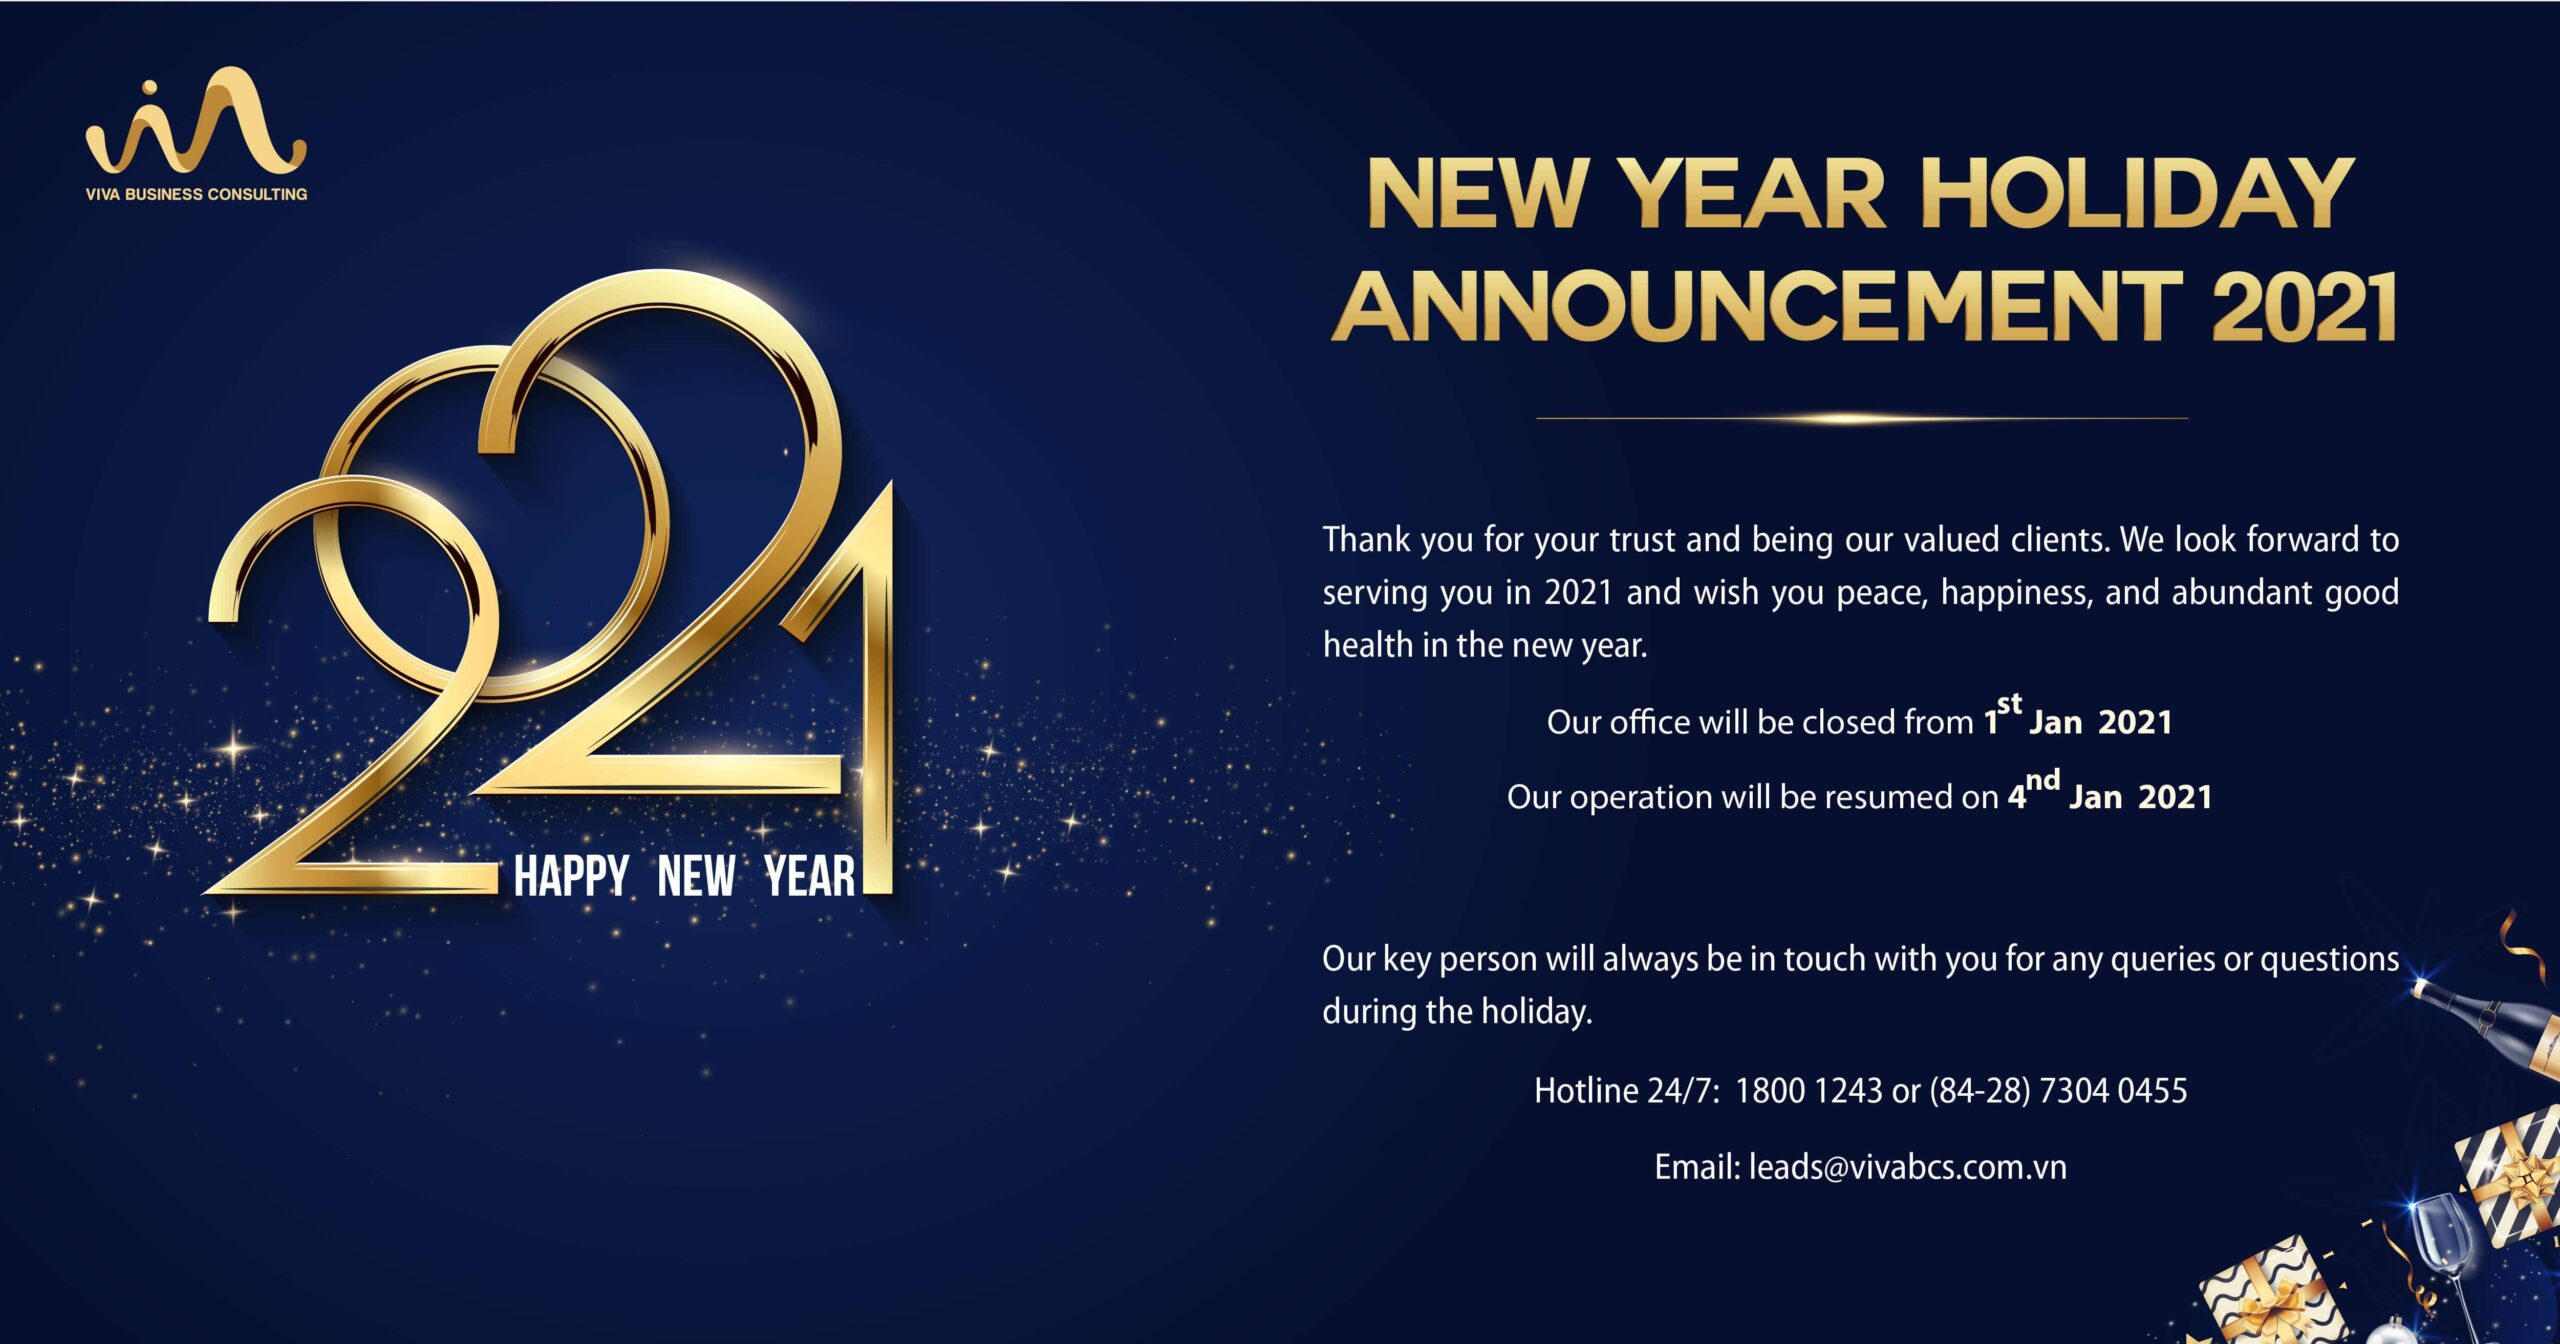 NEW YEAR HOLIDAY ANNOUNCEMENT 2021